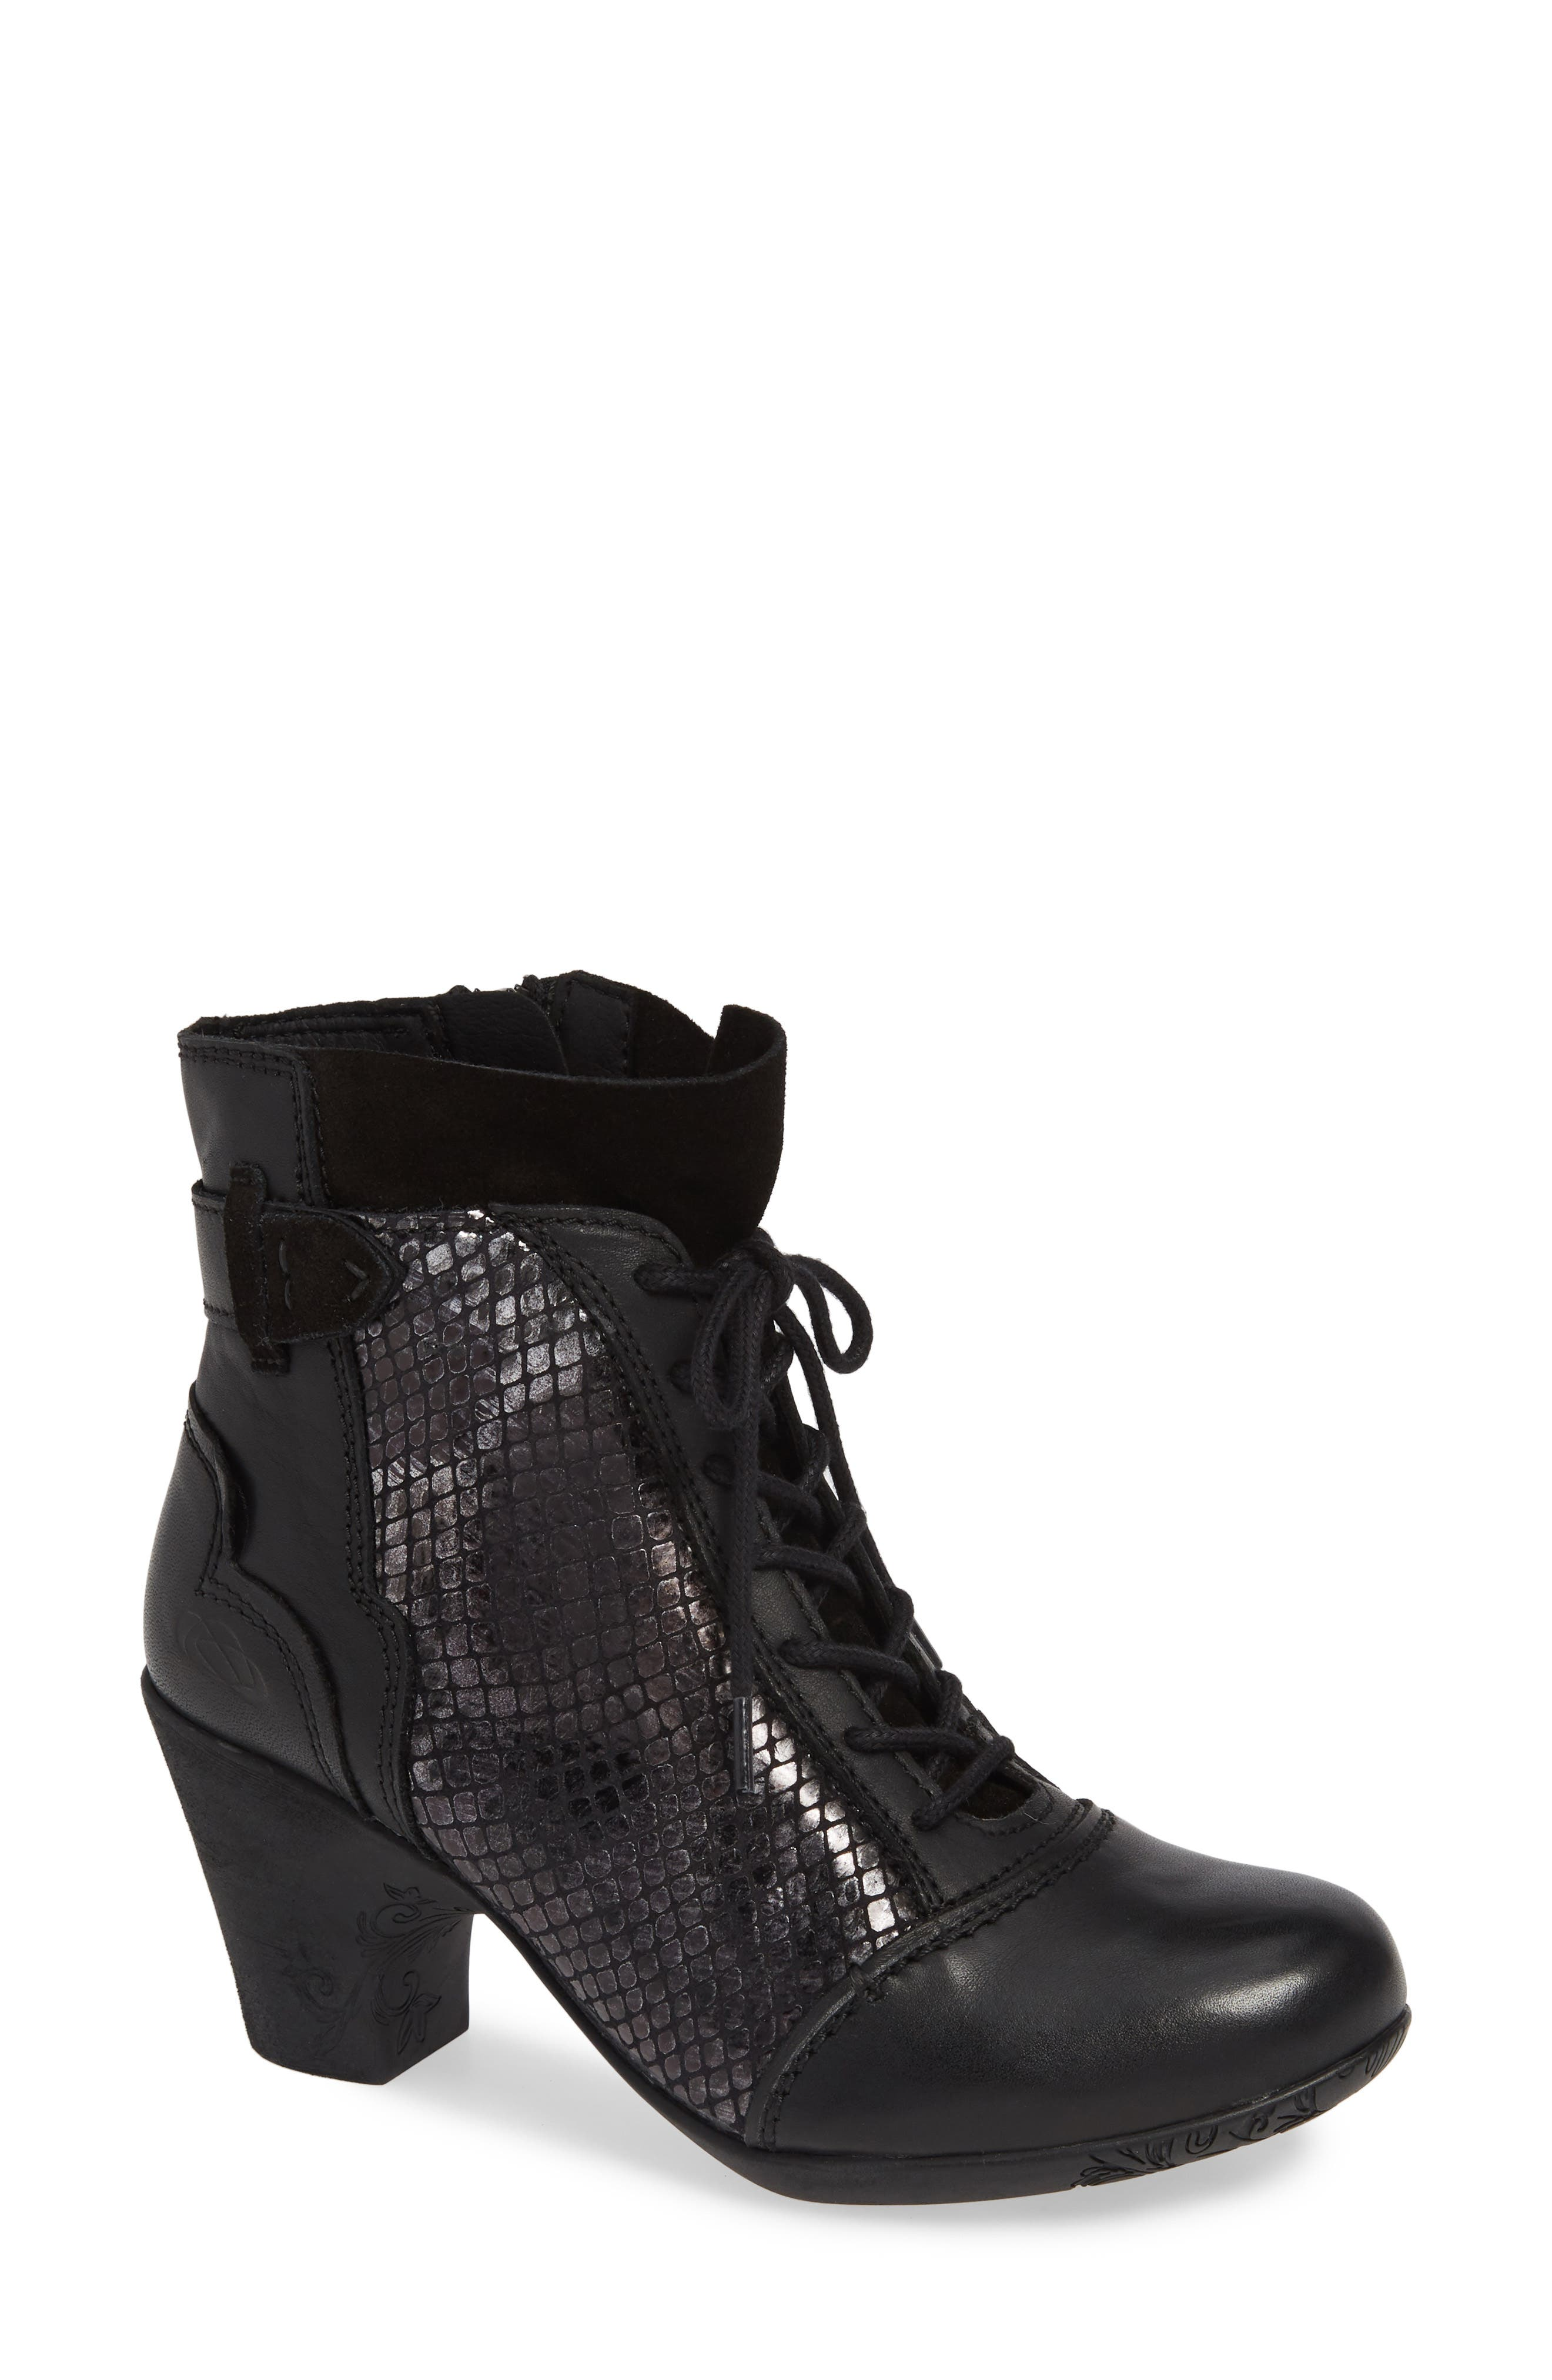 'Jesse' Lace-Up Bootie,                             Main thumbnail 1, color,                             BLACK TAIPAN LEATHER